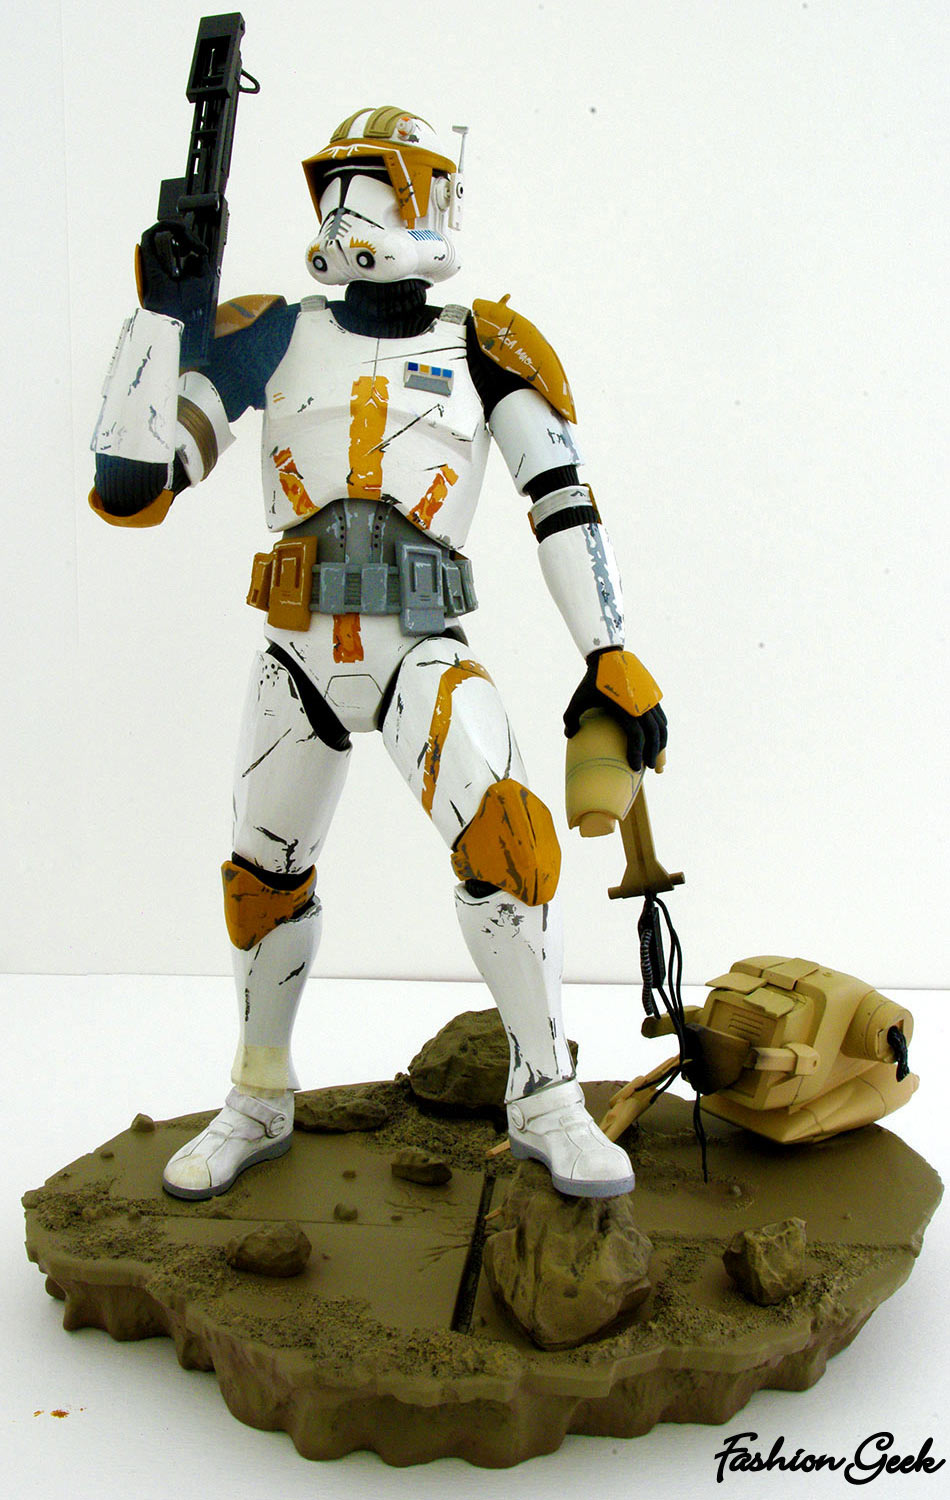 Commander-Cody-star-wars-figurine1